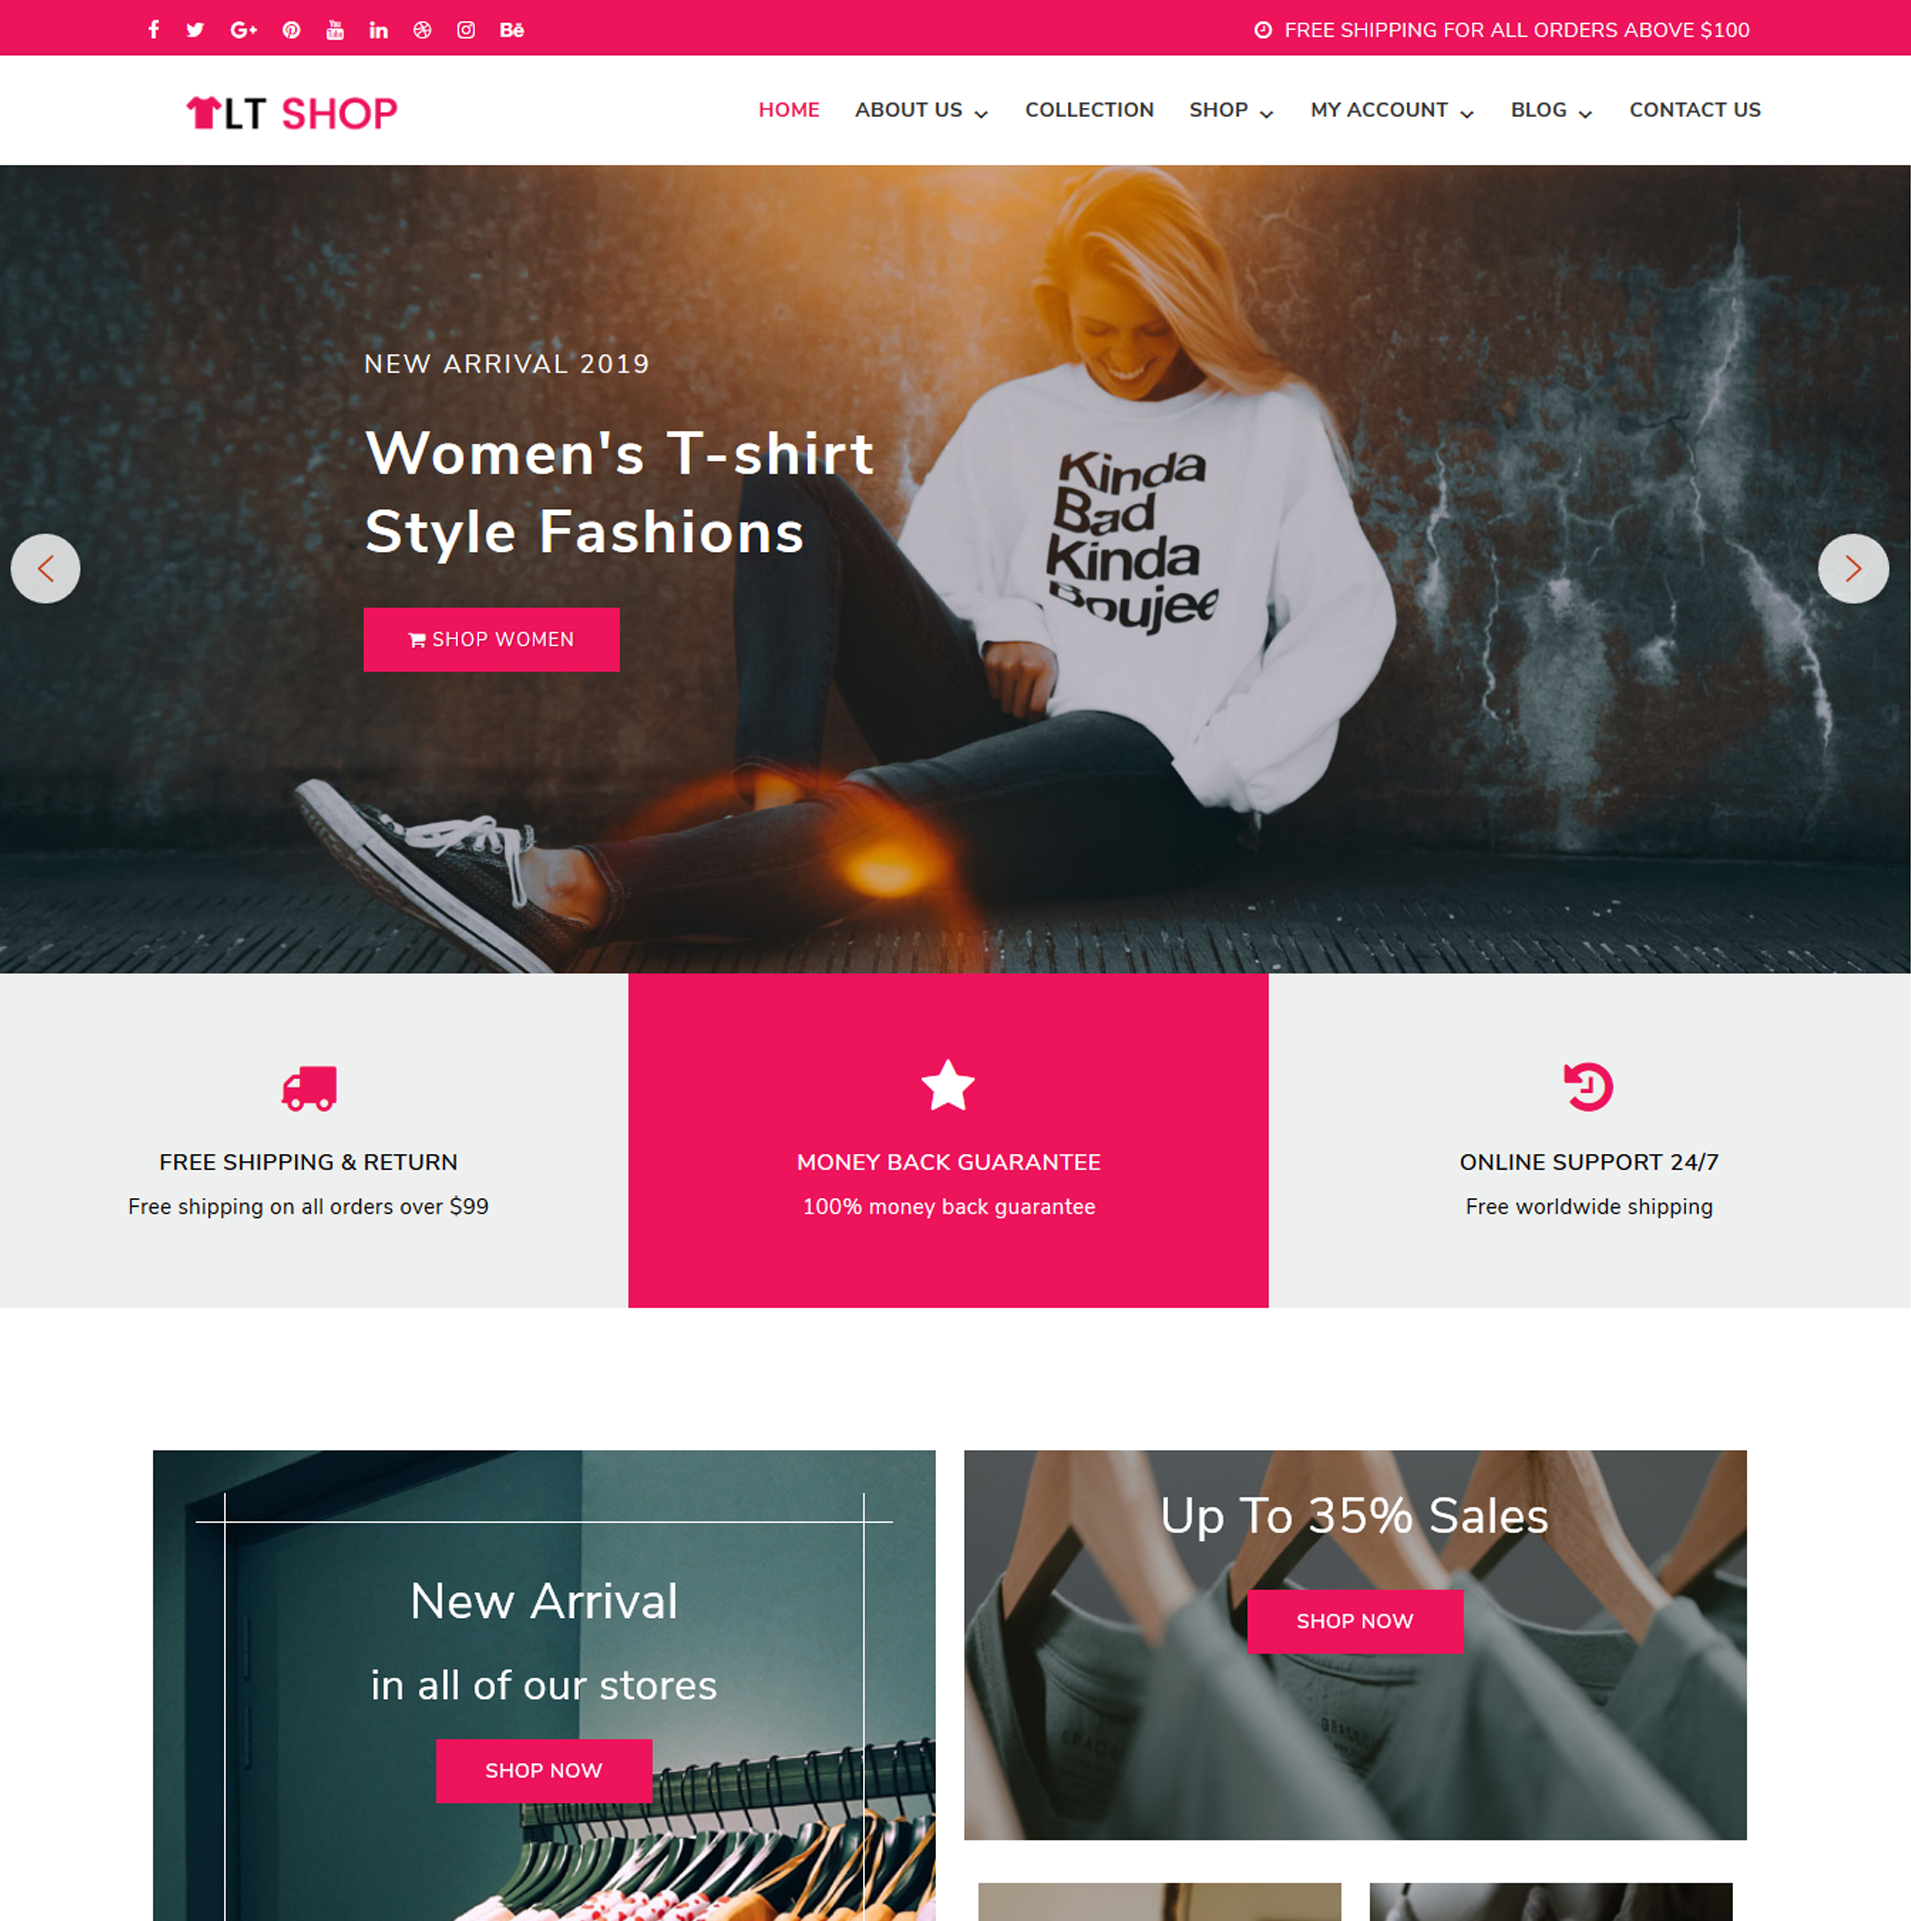 lt-shop-wordpress-theme